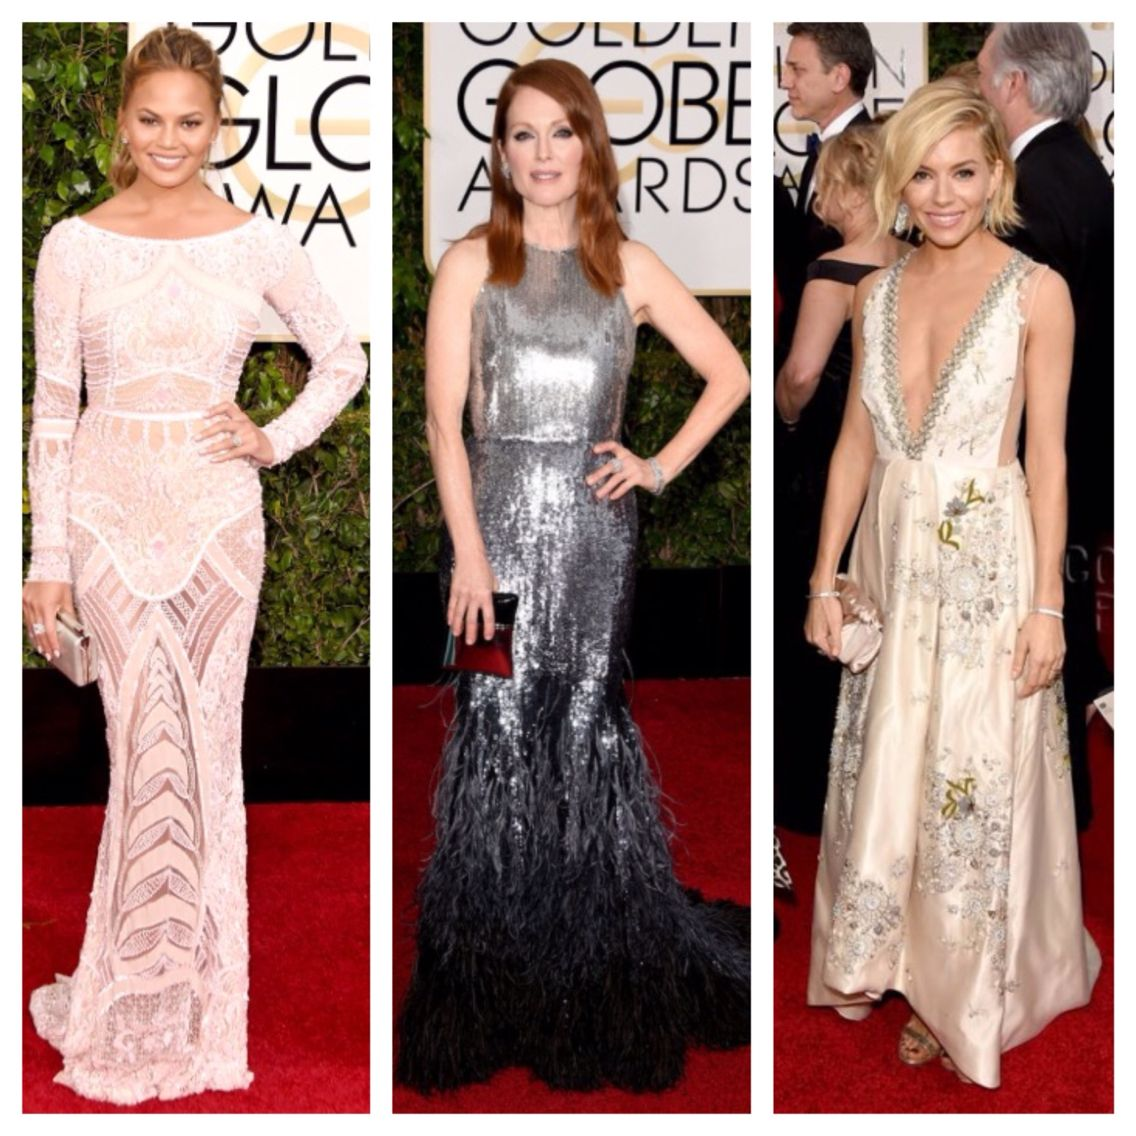 900e2cc040 My Golden Globes 2015 Best Dressed  Chrissy Teigen (Zuhair Murad ...